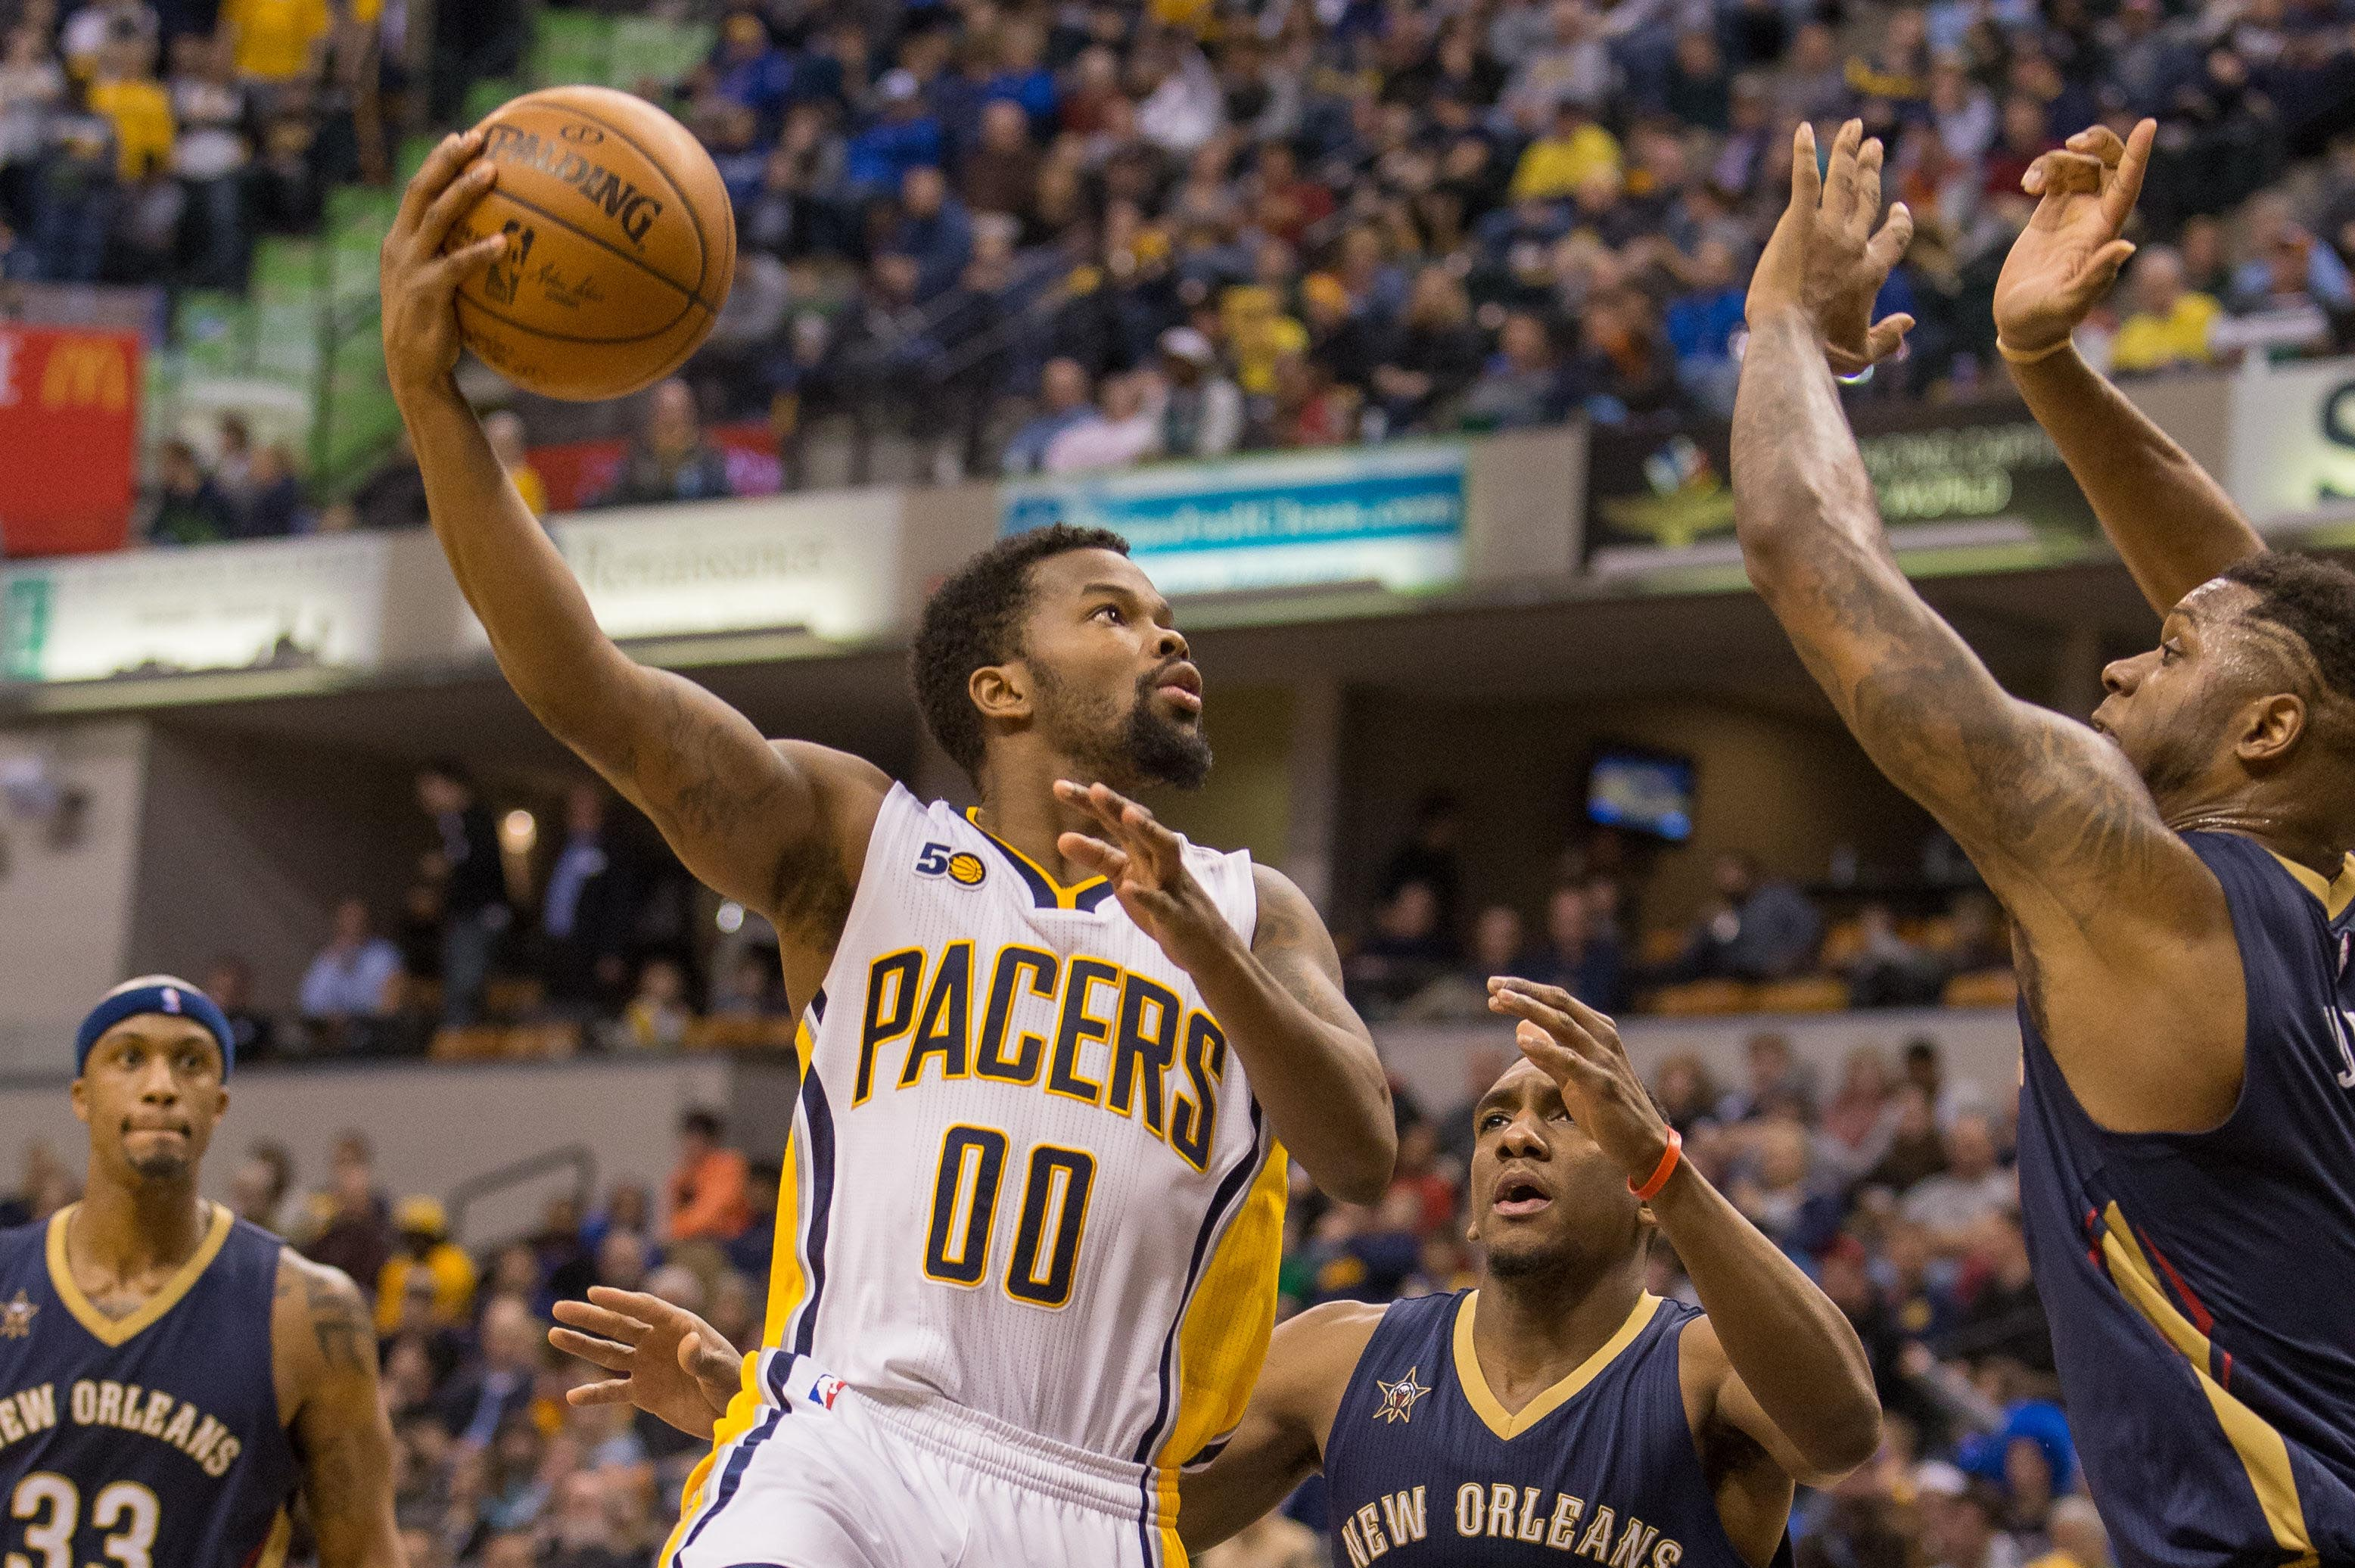 9814093-nba-new-orleans-pelicans-at-indiana-pacers